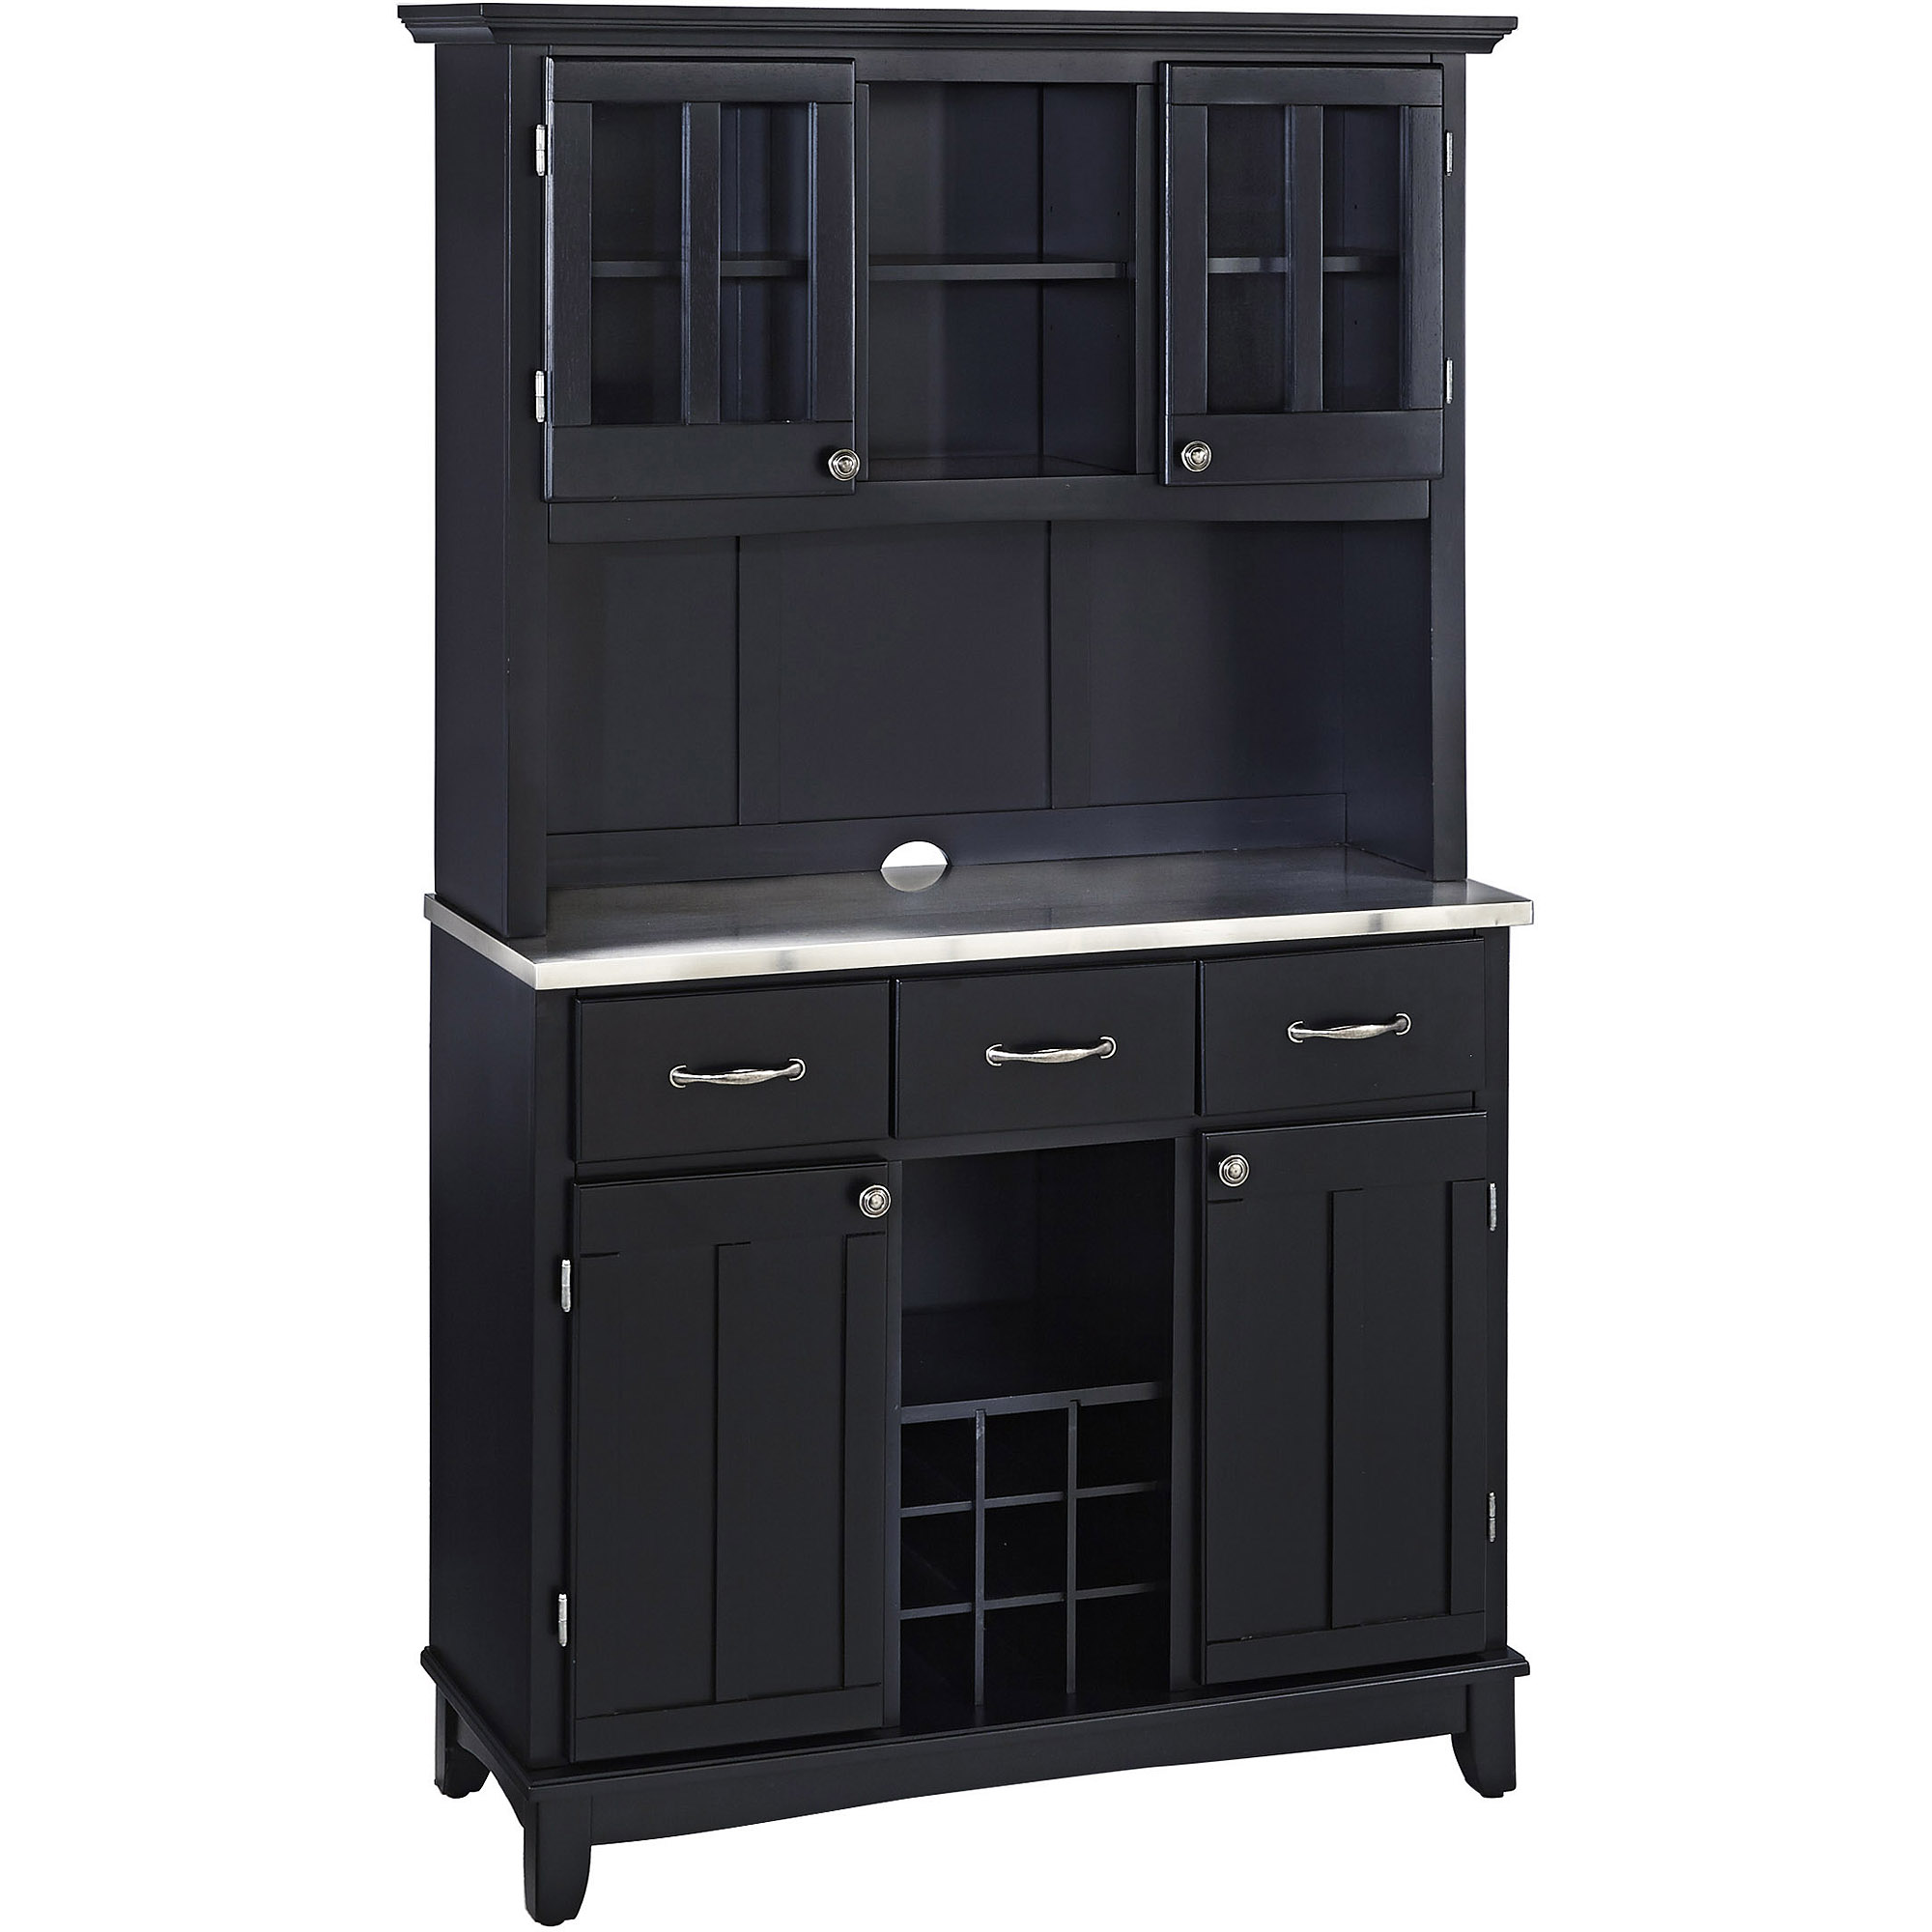 Amazing Home Styles Large Buffet U0026 Two Door Hutch, Black Finish With Stainless Steel